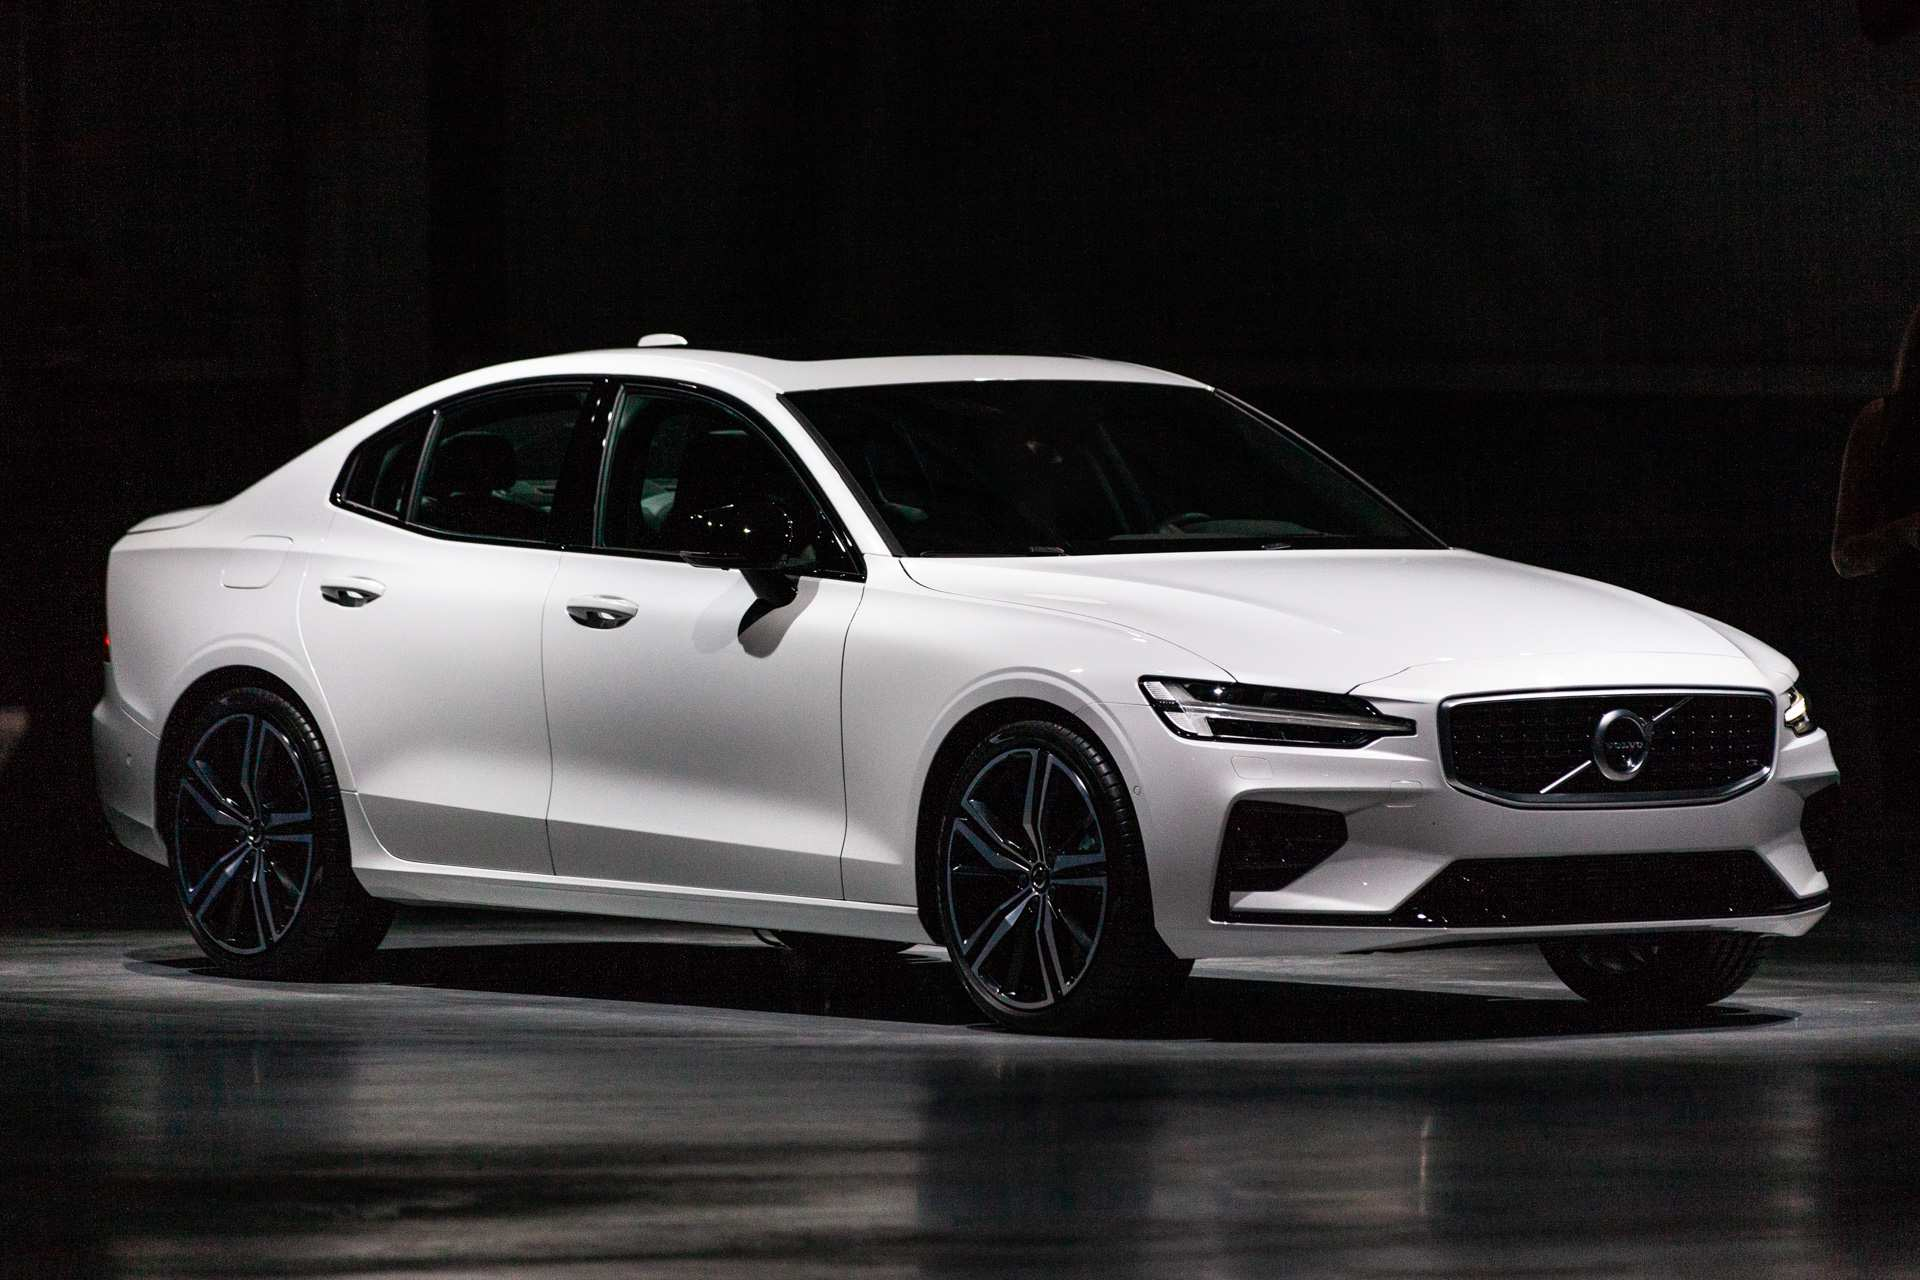 35 Gallery of Volvo News 2019 History for Volvo News 2019